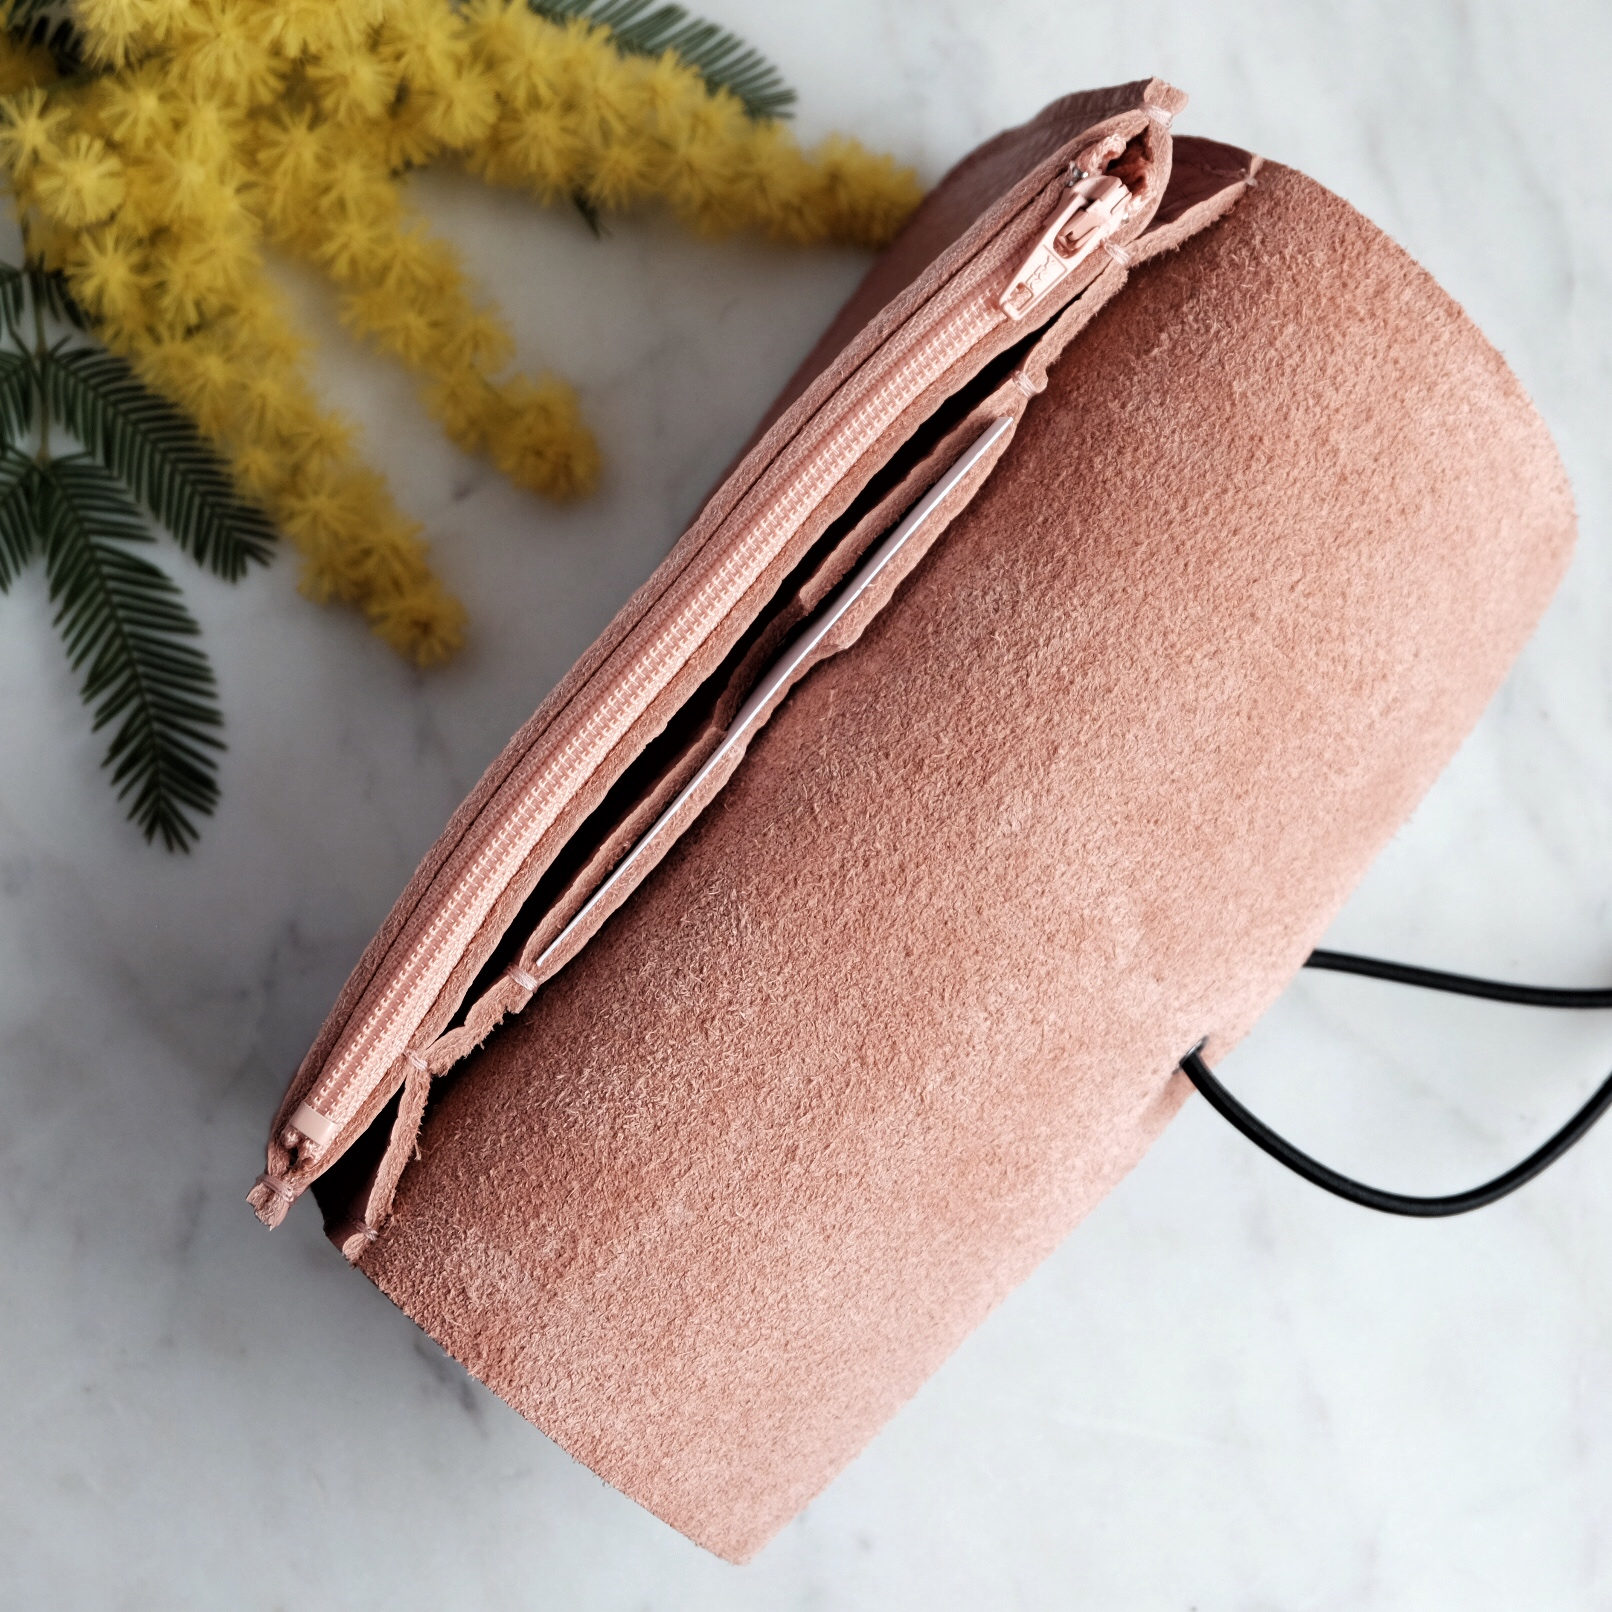 MONEDERO MEDIANO DUSTY PINK 4 MISHA BARCELONA